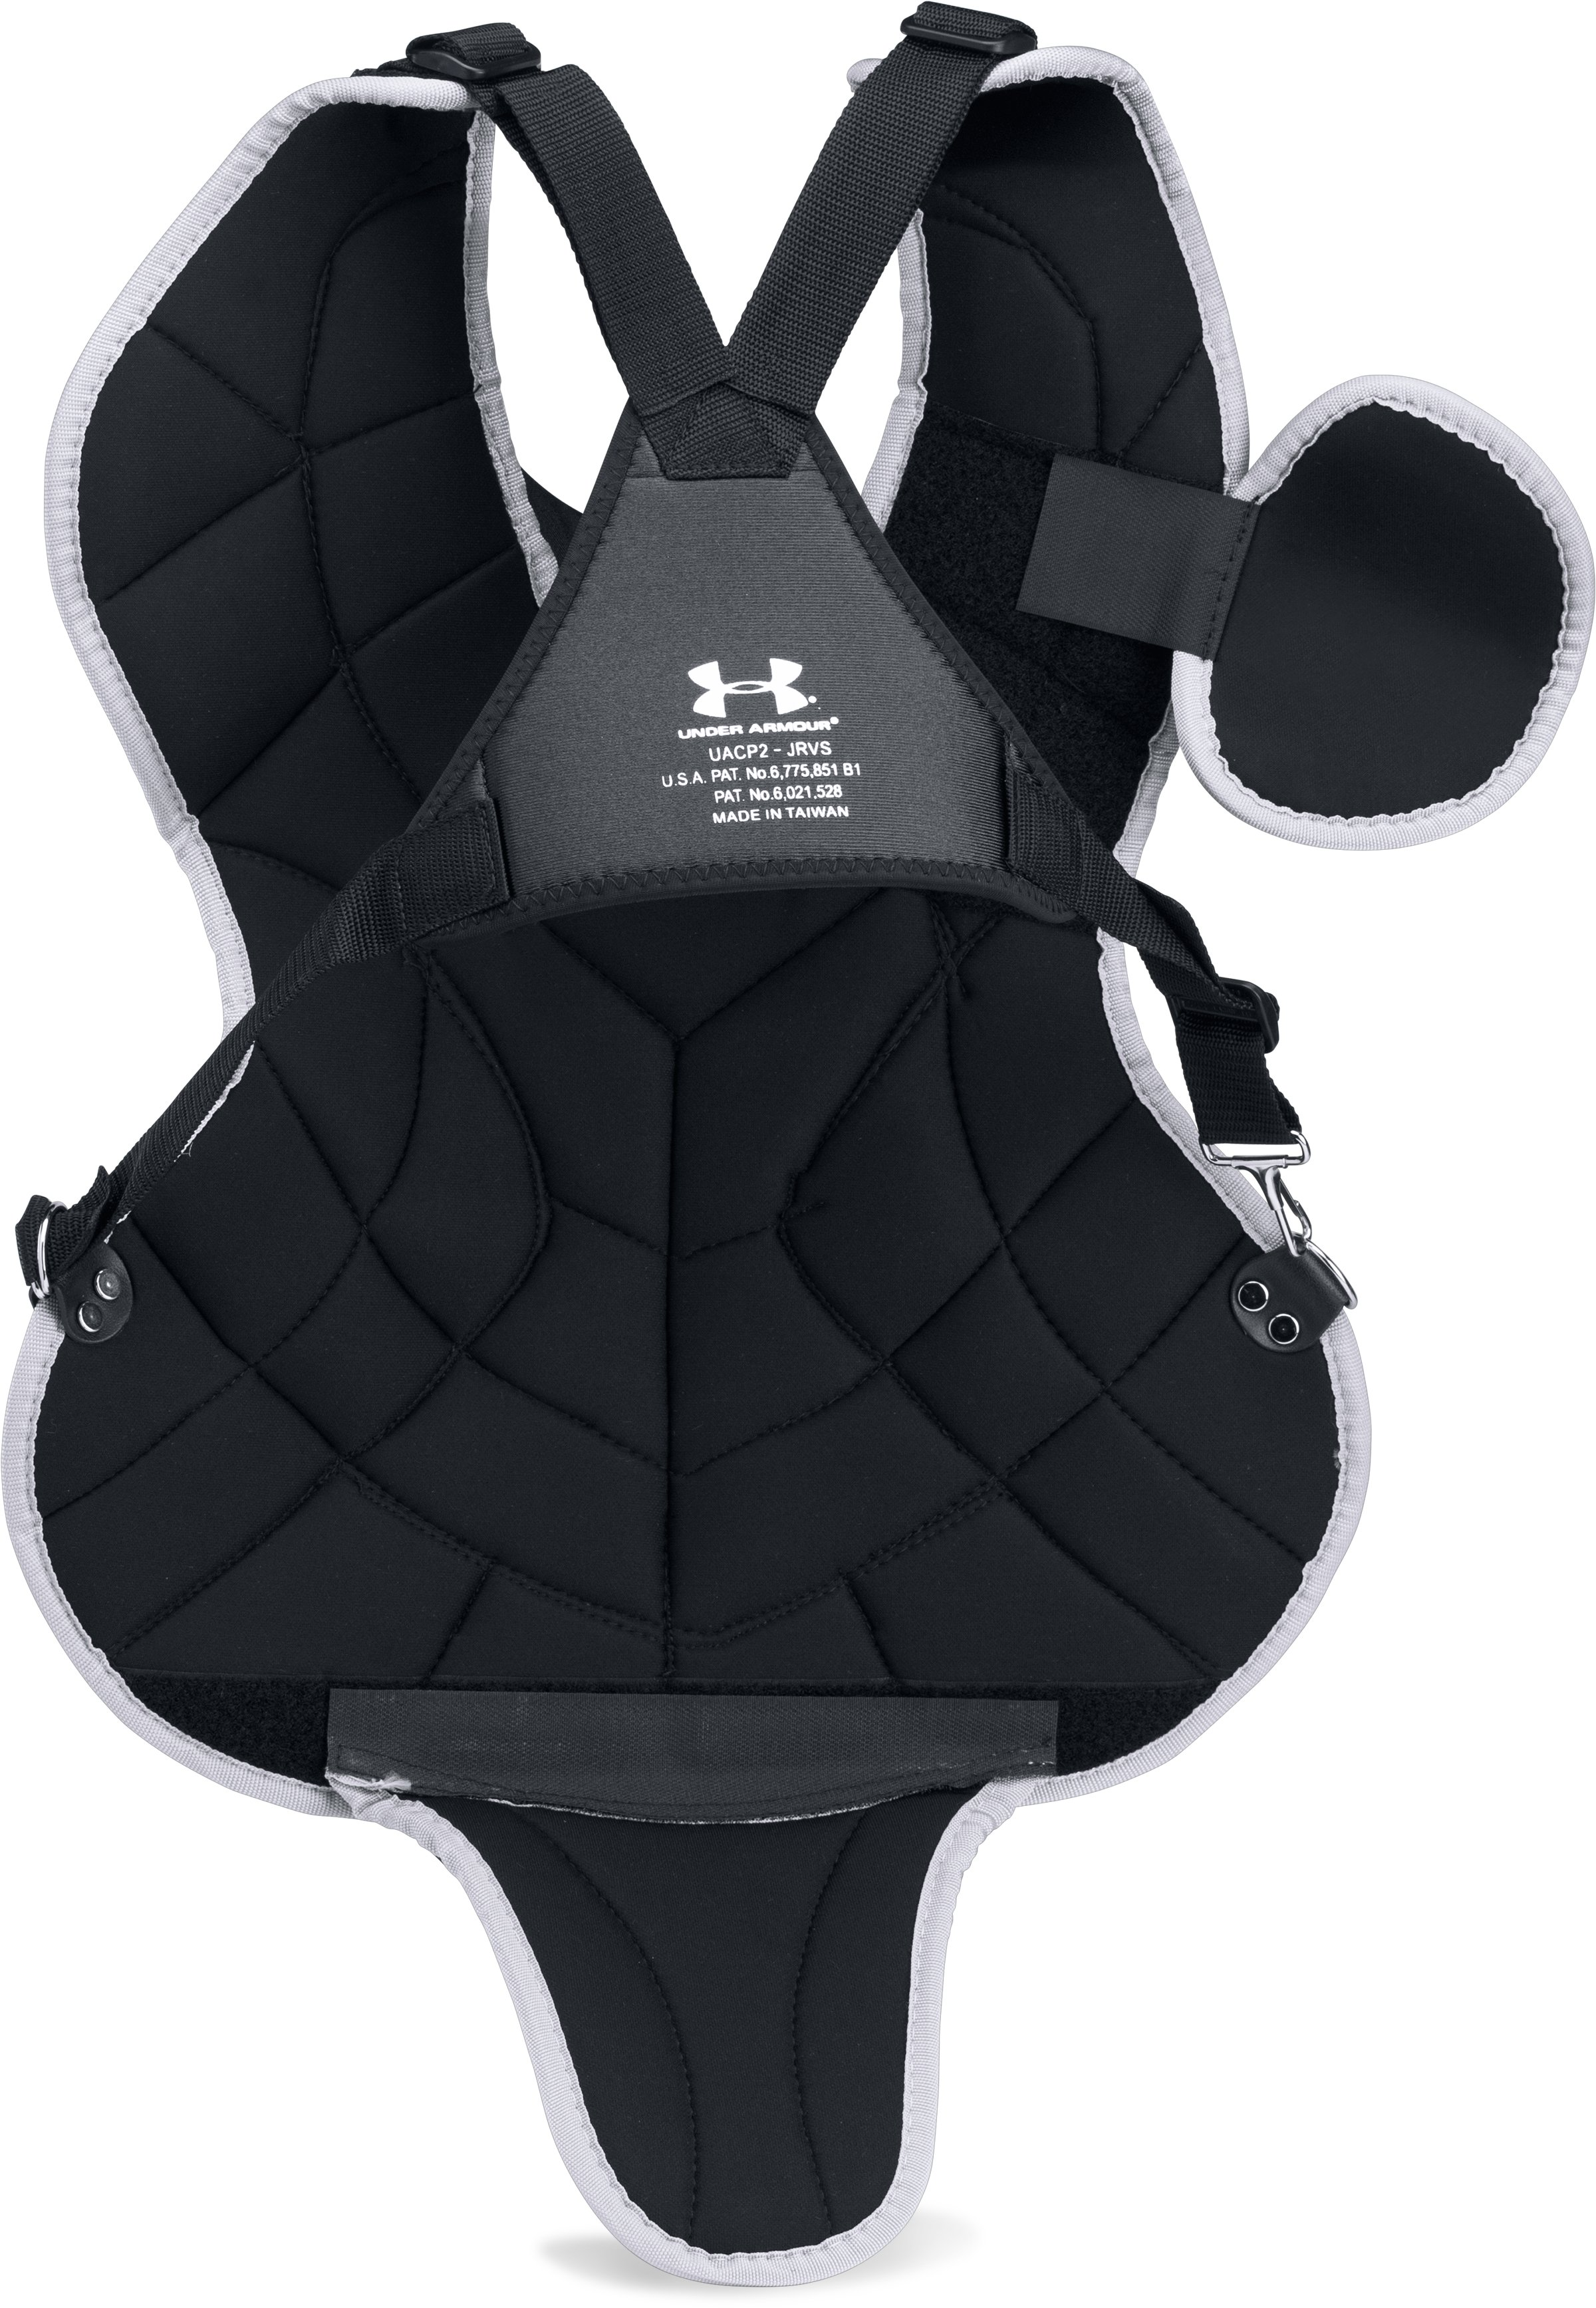 "Boys' UA Victory Junior Chest Protector 14.5"", Black"